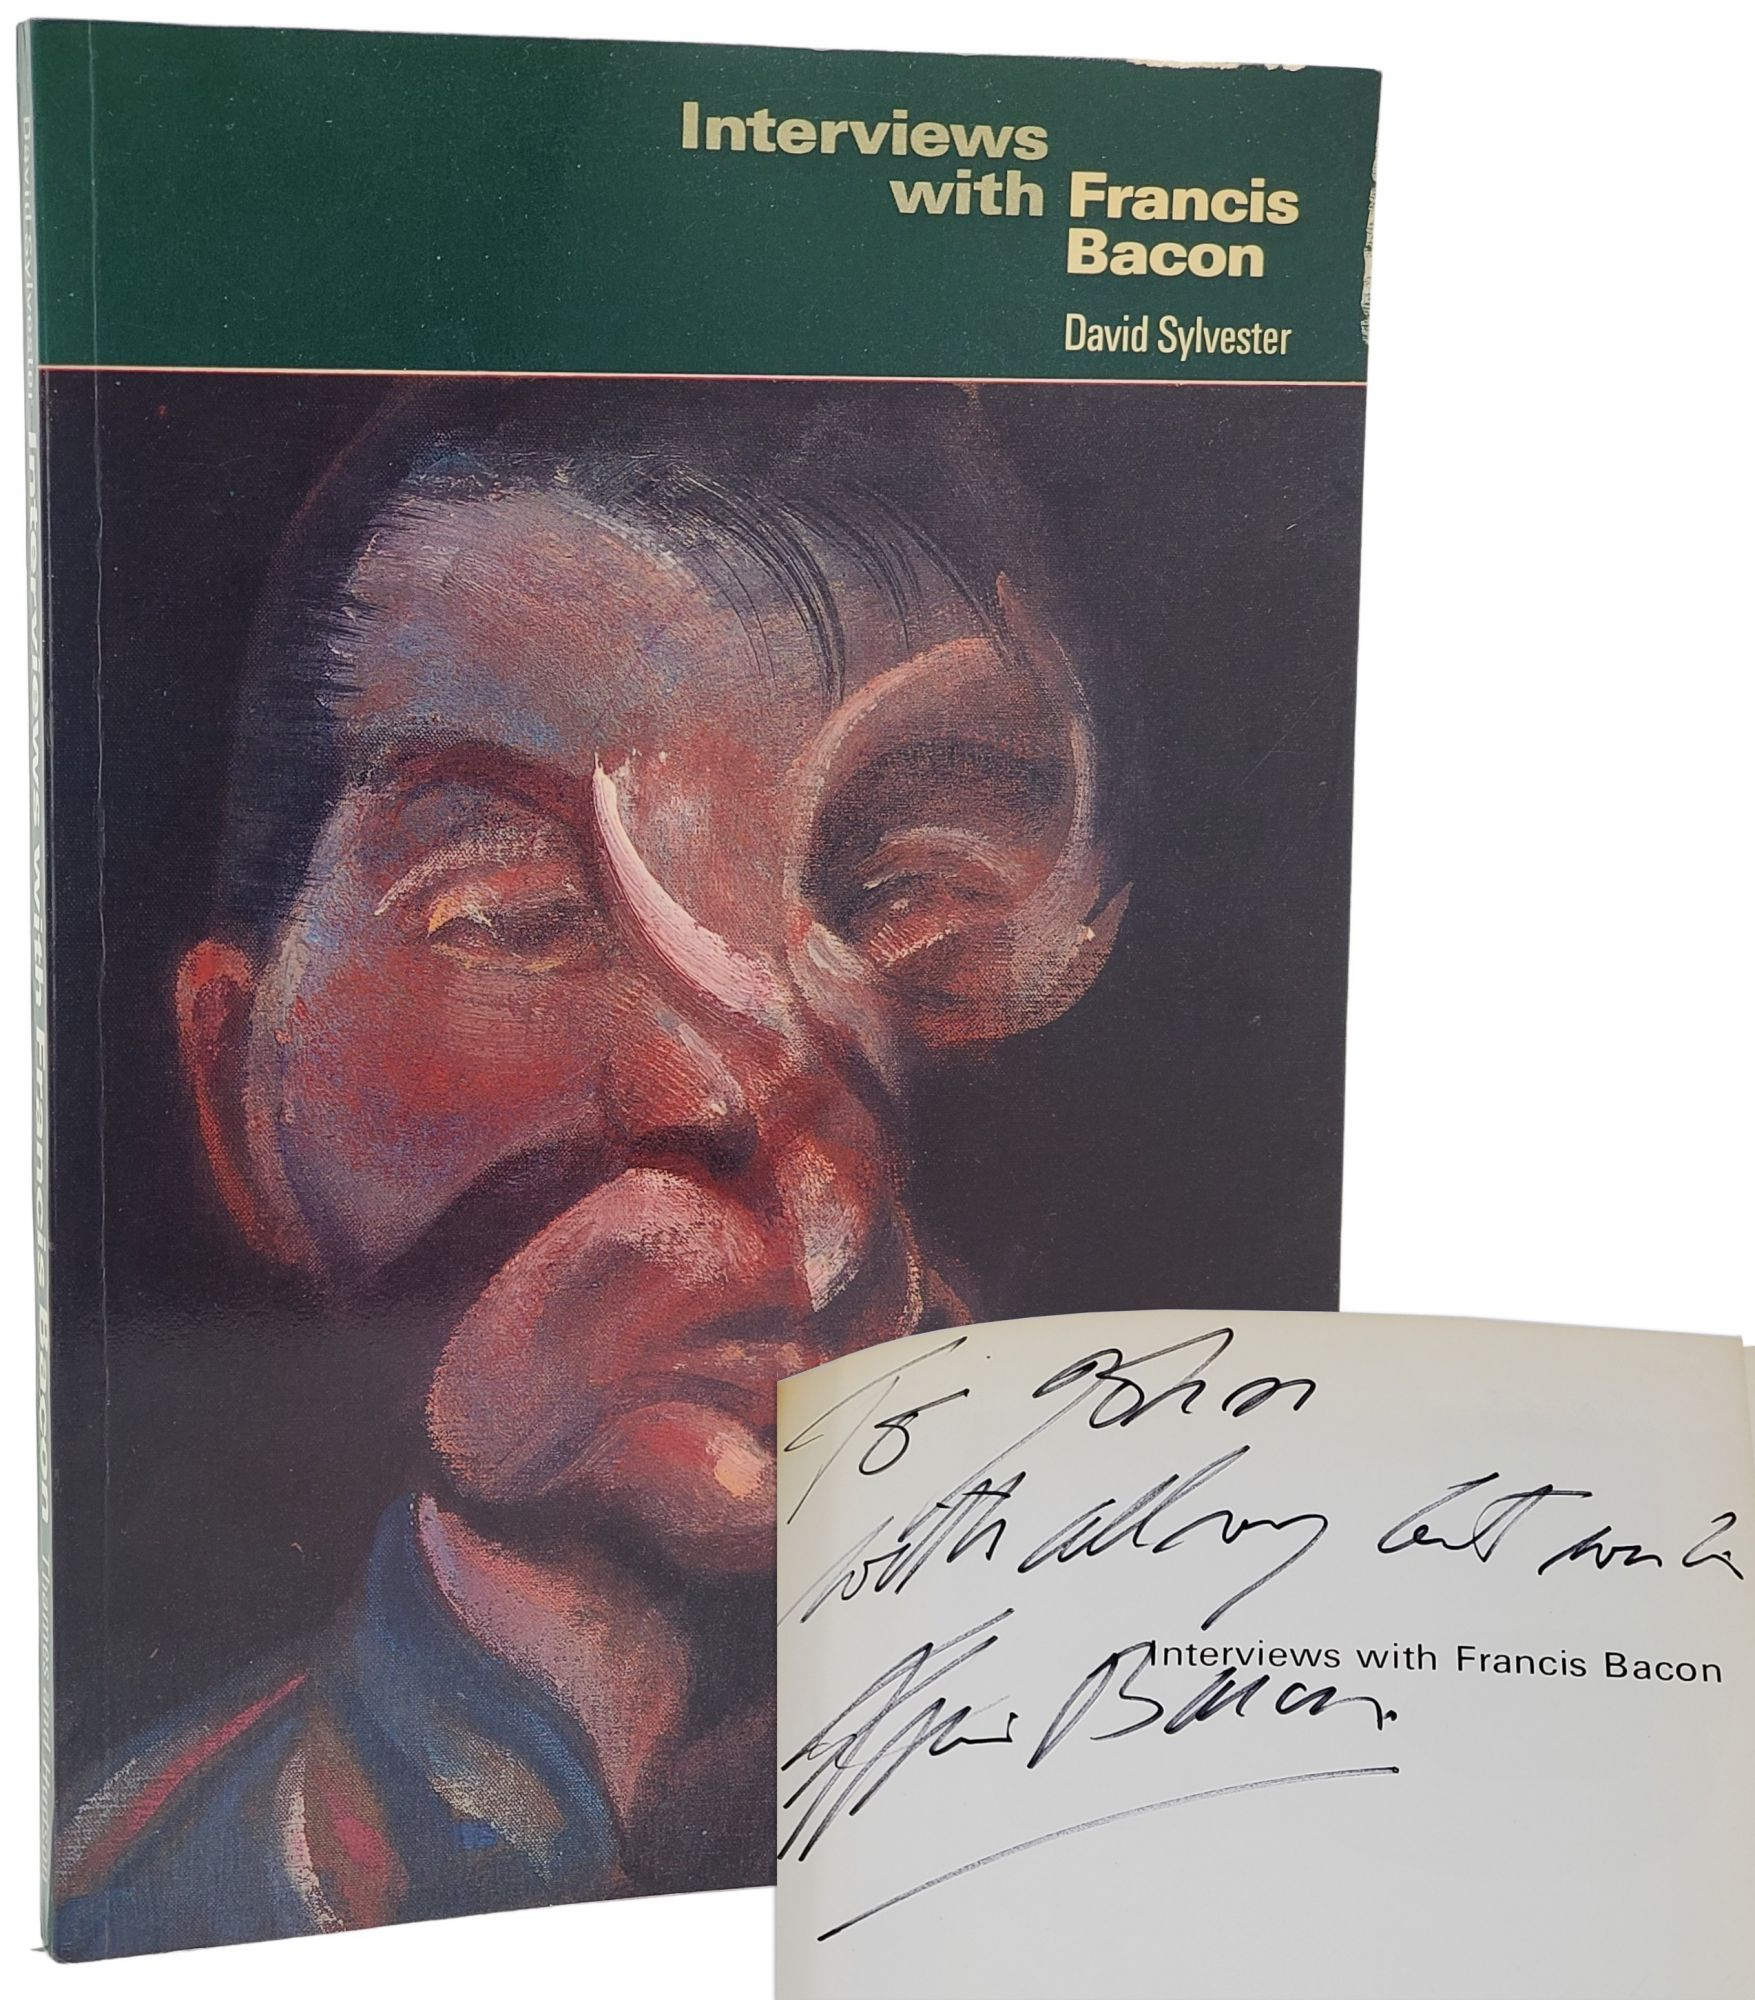 INTERVIEWS WITH FRANCIS BACON. With 94 Illustrations. Francis Bacon, David Sylvester.